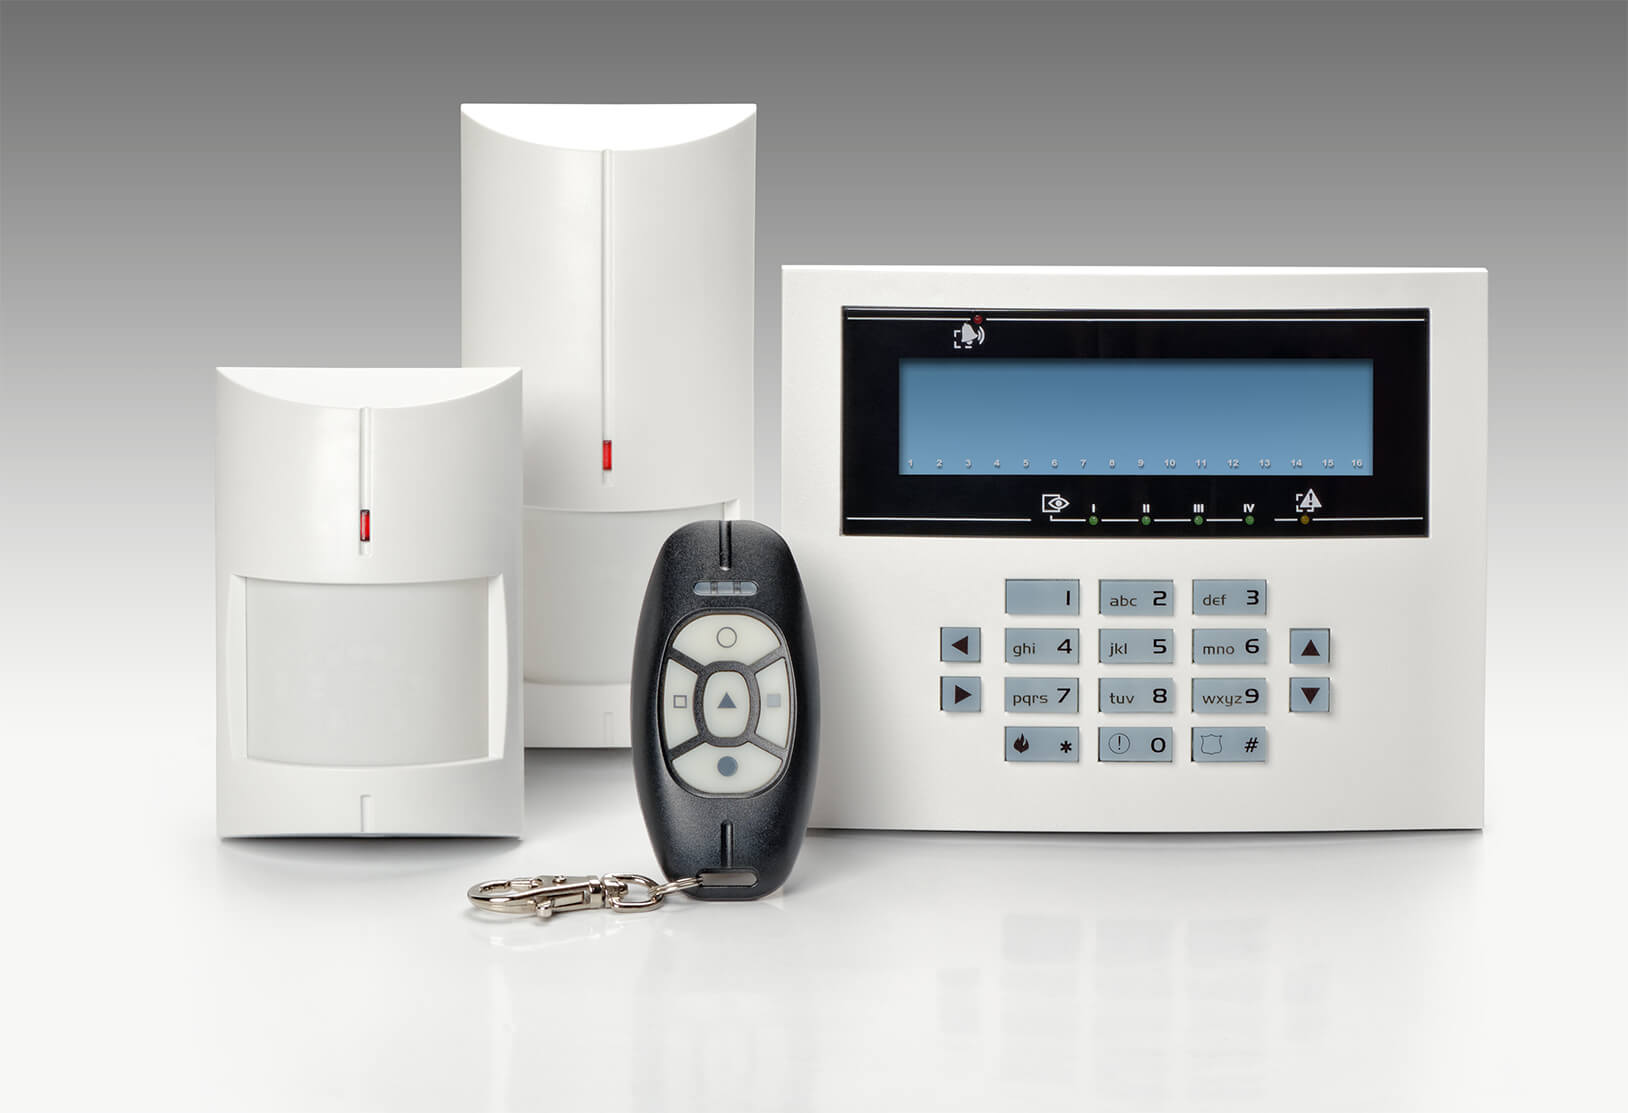 Business & Residential NACOSS Approved Burglar Alarms In St. Marylebone W1 - Local St. Marylebone W1 security company.Call 02078872244 - Dedicated to Safety & Security. Companies, shops and homes ..